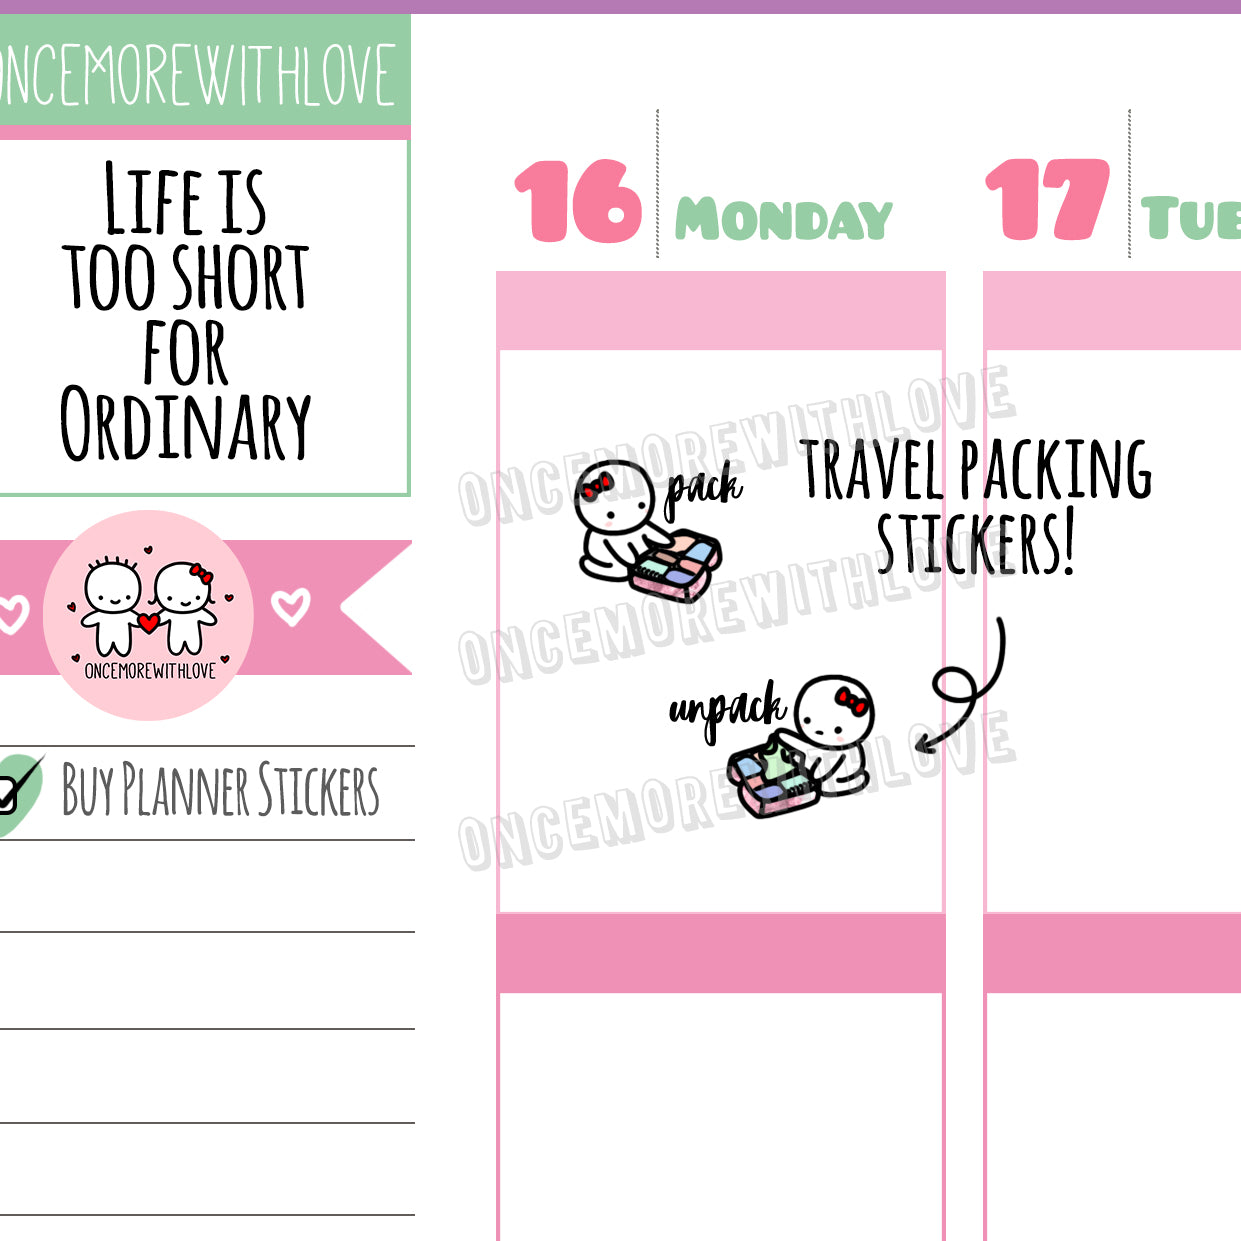 Munchkins - Pack and Unpack Luggage Reminder for Travel Planner Stickers (M401)